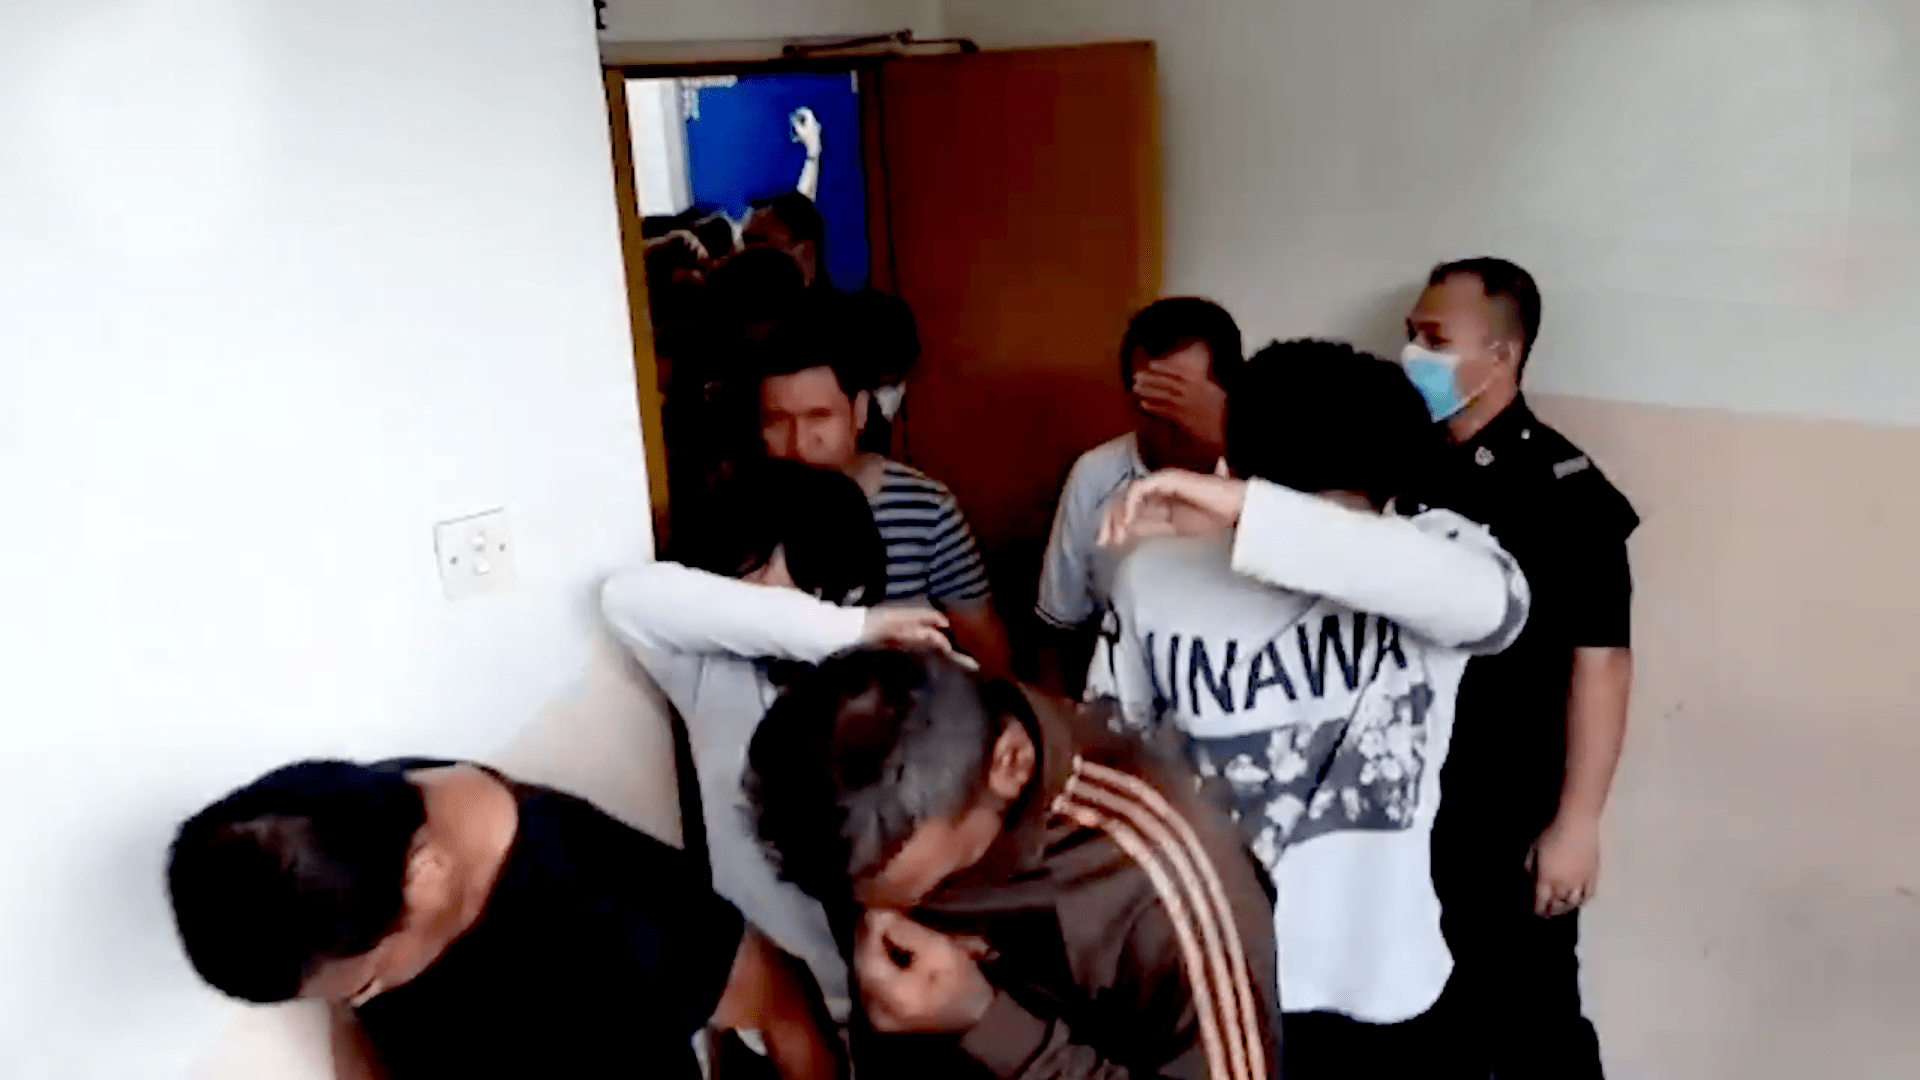 moc defiers arrested malaysia